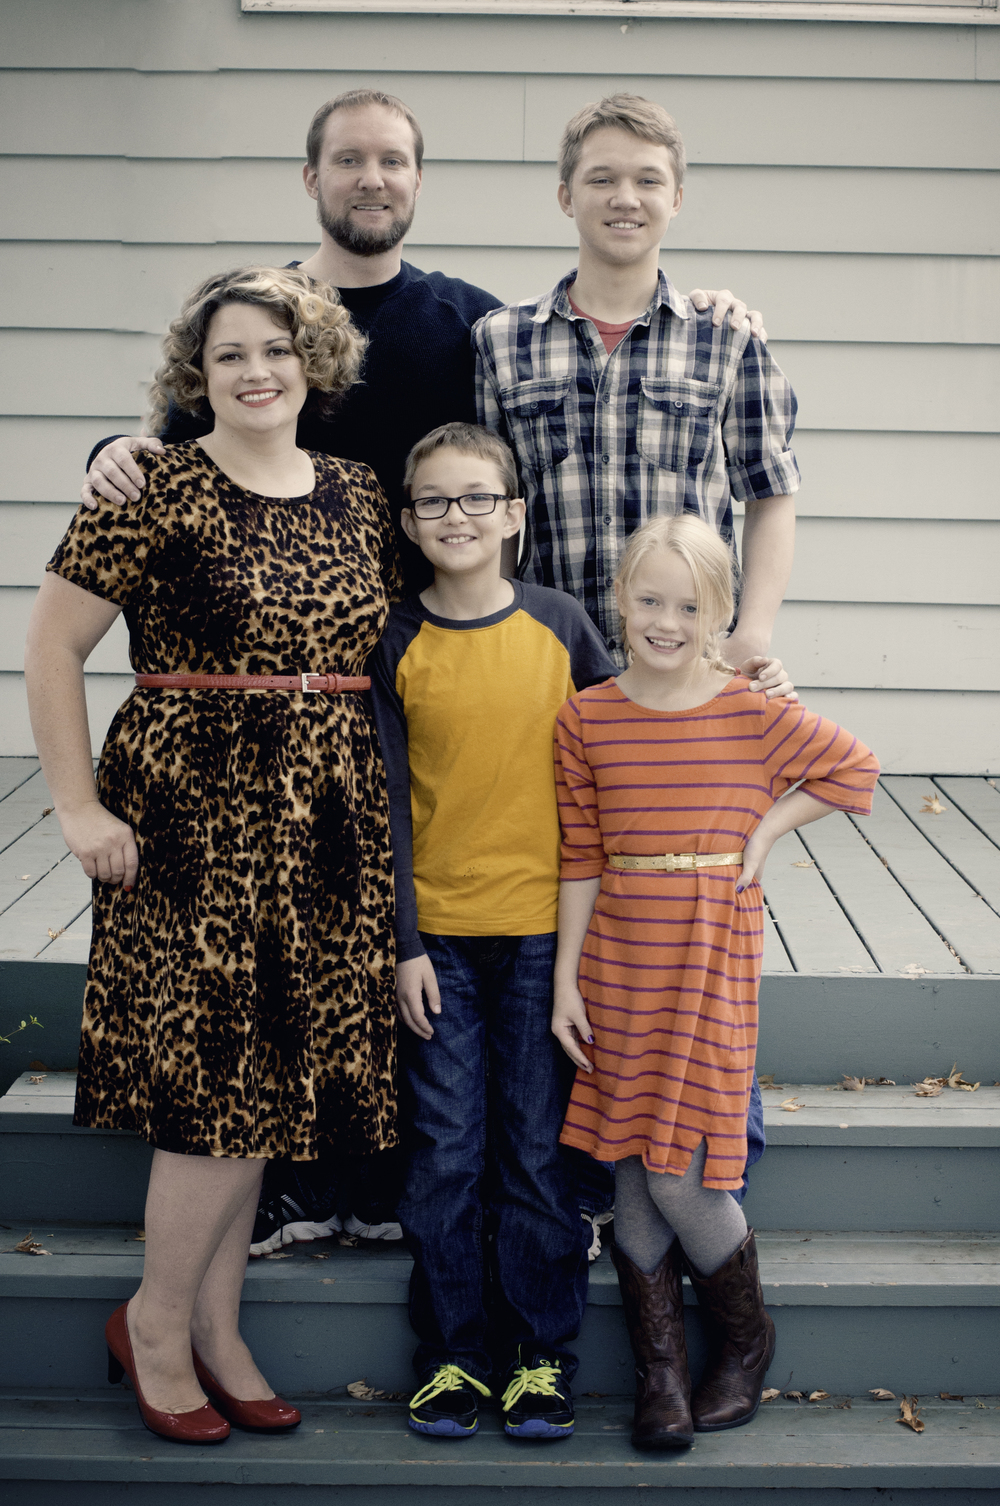 Grell family photos-family standing on steps.jpg